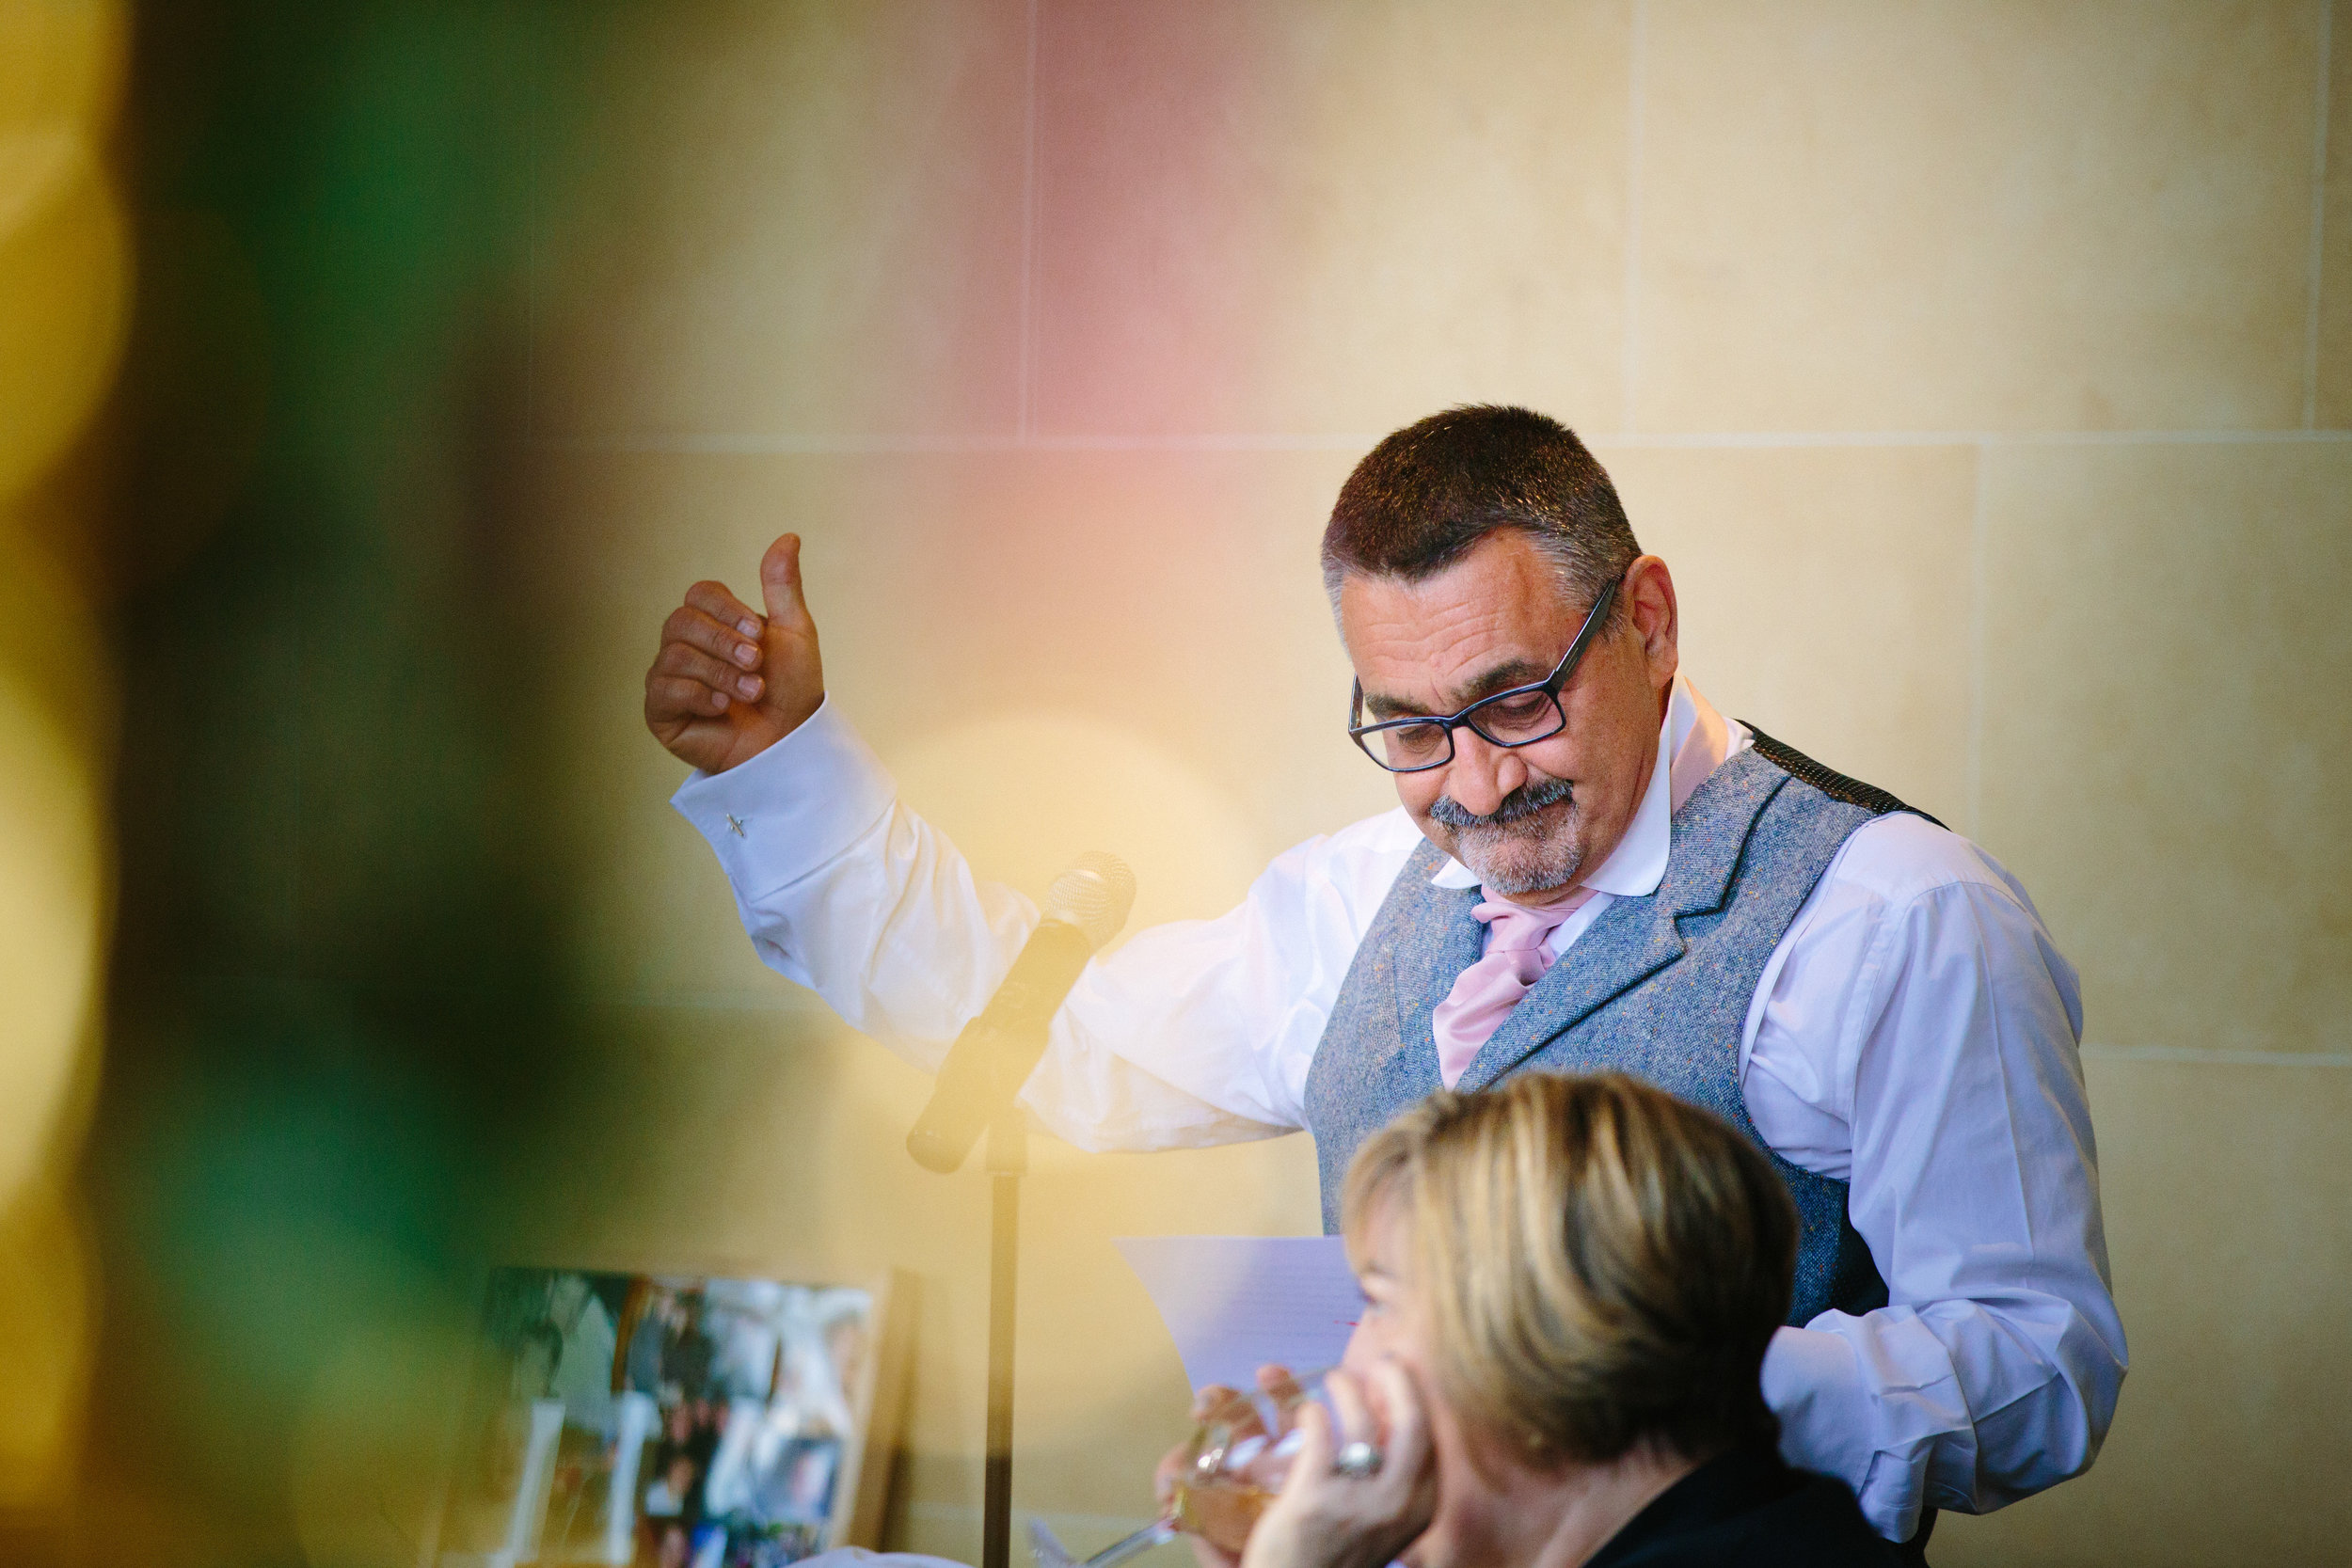 london-bedfordshire-uk-wedding-photography-woburn-sculpture-gallery-speeches-58